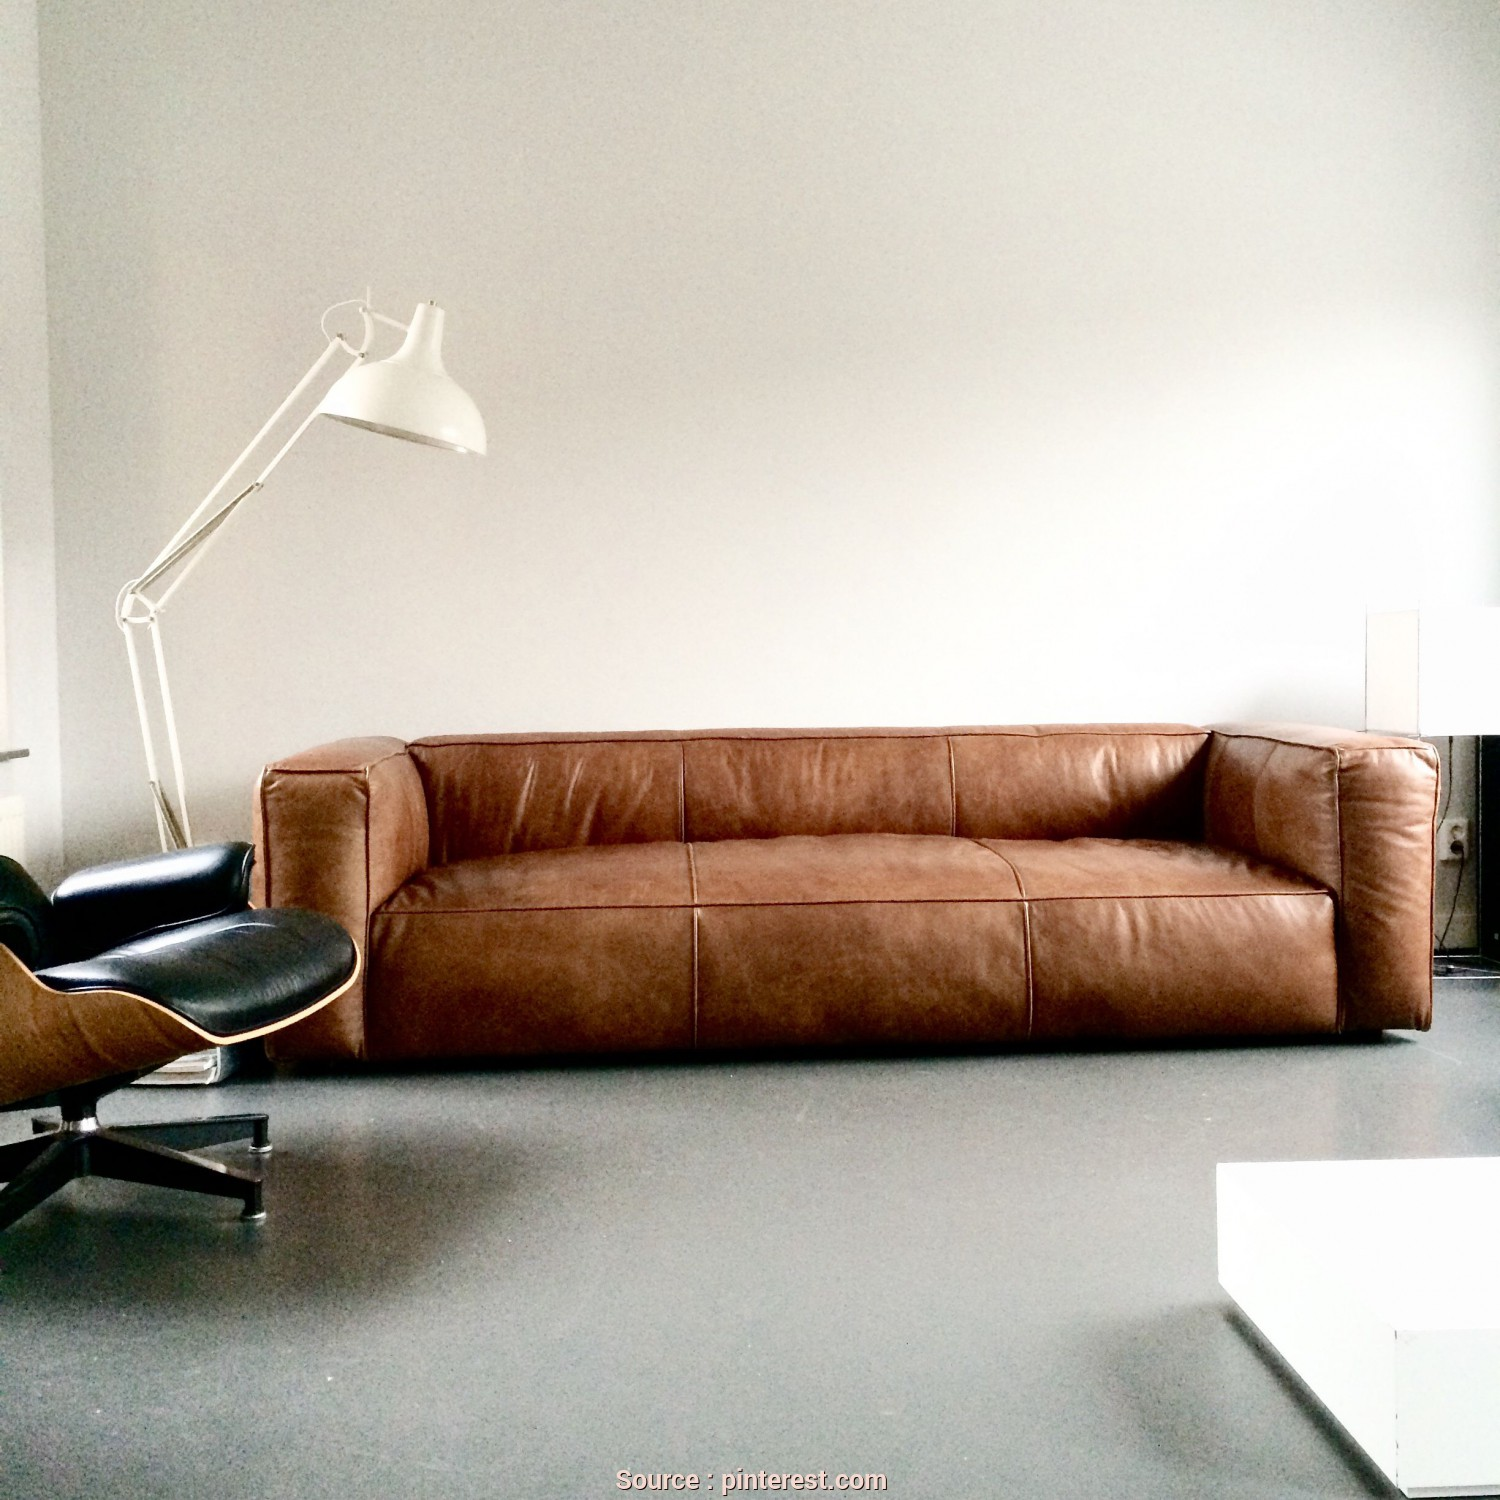 Divano Olina Poltrone E Sofa, Locale Love This Vintage Design Leather Sofa #Cognac #Sofa #LeatherSofa